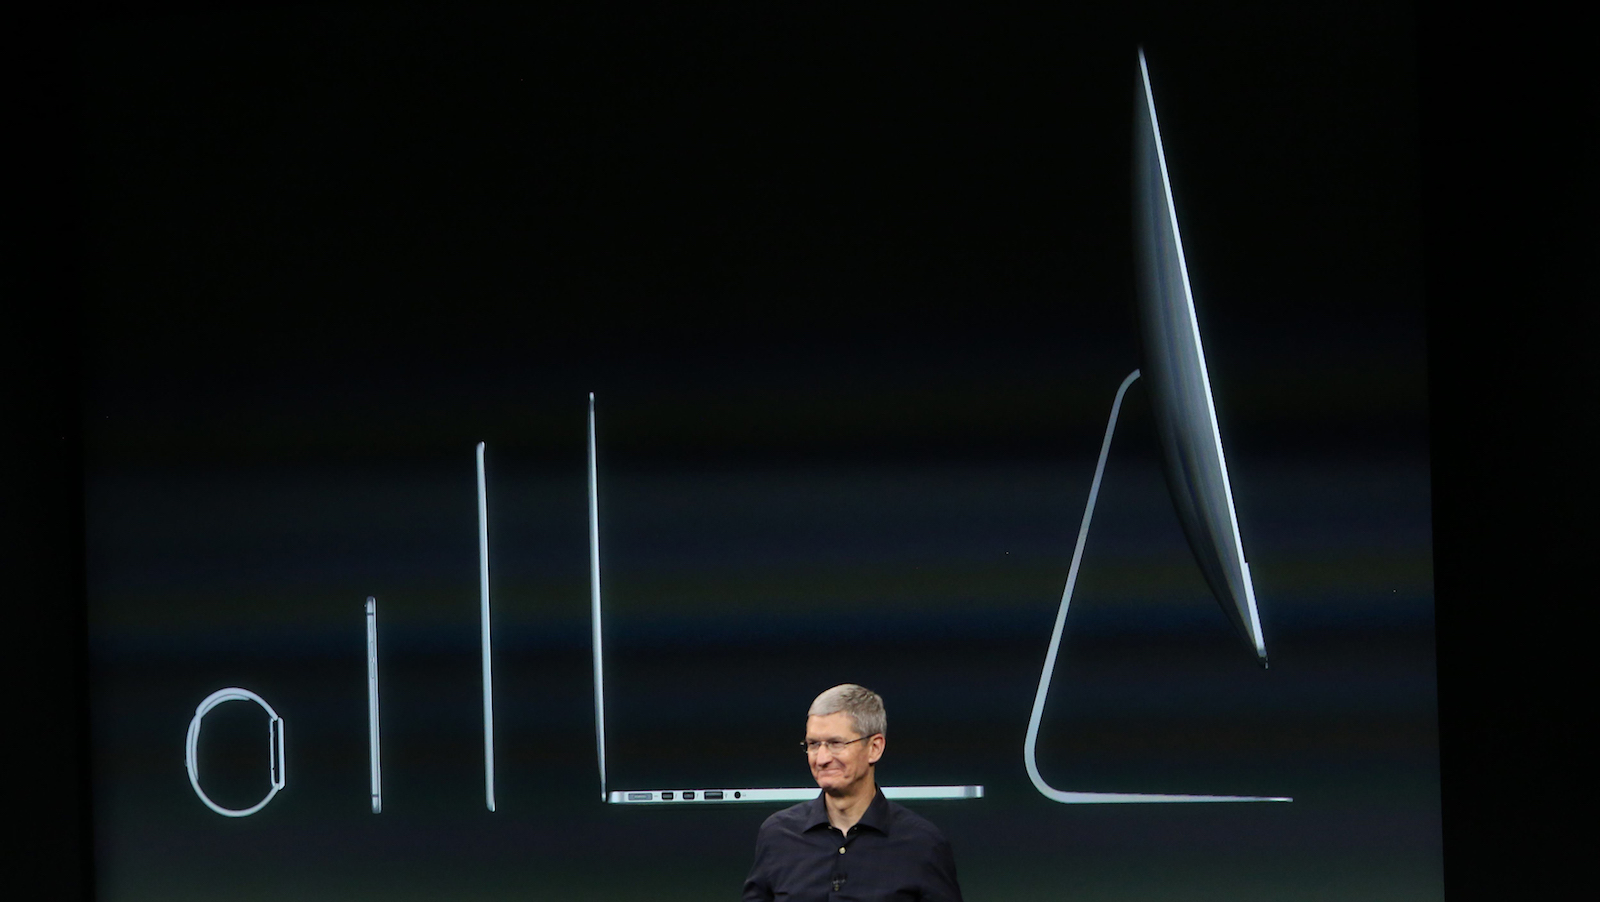 Apple CEO Tim Cook speaks during a presentation at Apple headquarters in Cupertino, California October 16, 2014.  REUTERS/Robert Galbraith (UNITED STATES  - Tags: SCIENCE TECHNOLOGY BUSINESS)   - RTR4AH2E